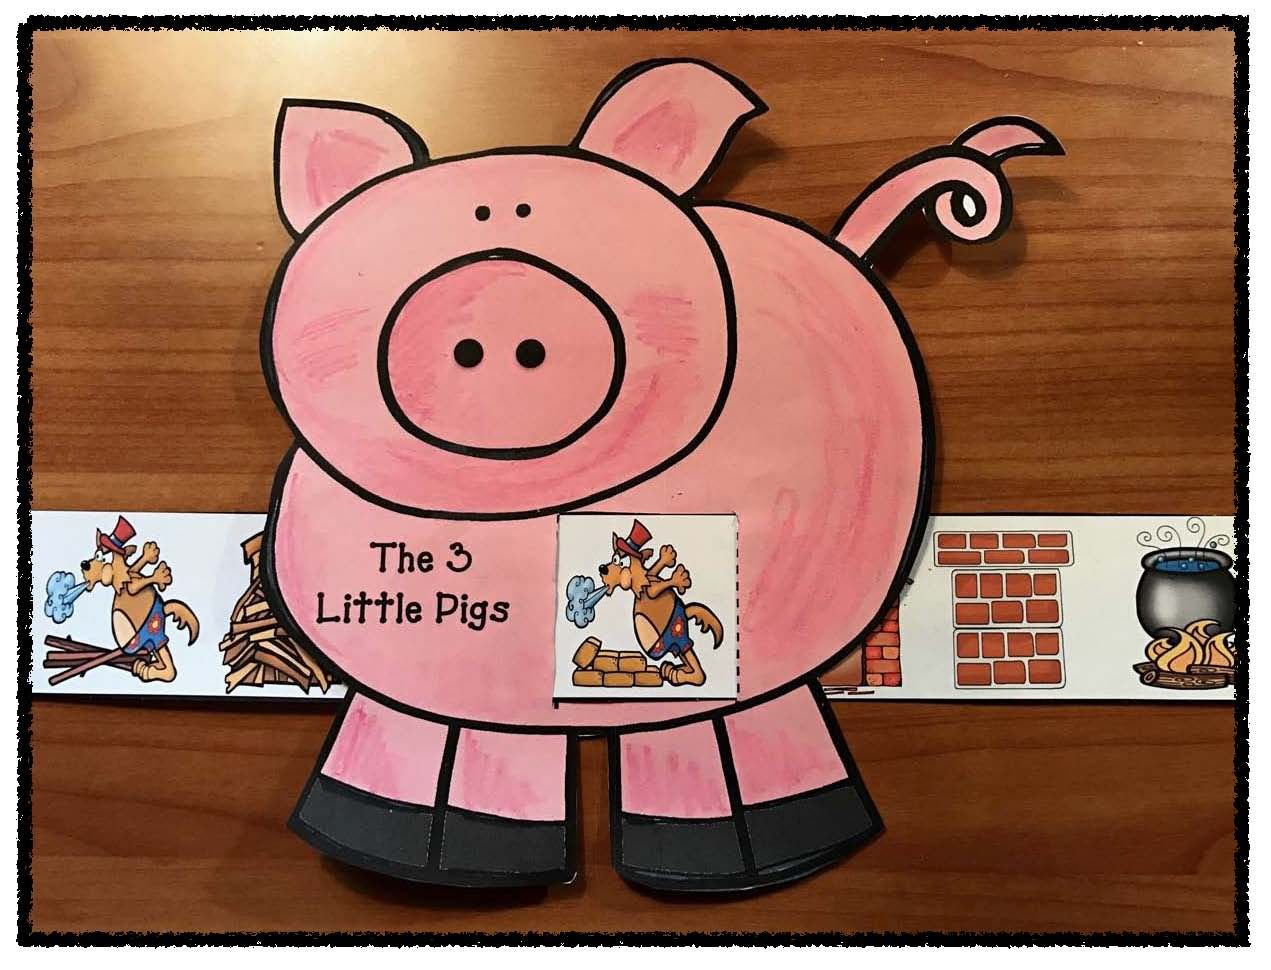 Reading Sequence Amp Retell The Story The 3 Little Pigs With This Cute Fairy Tale Slider